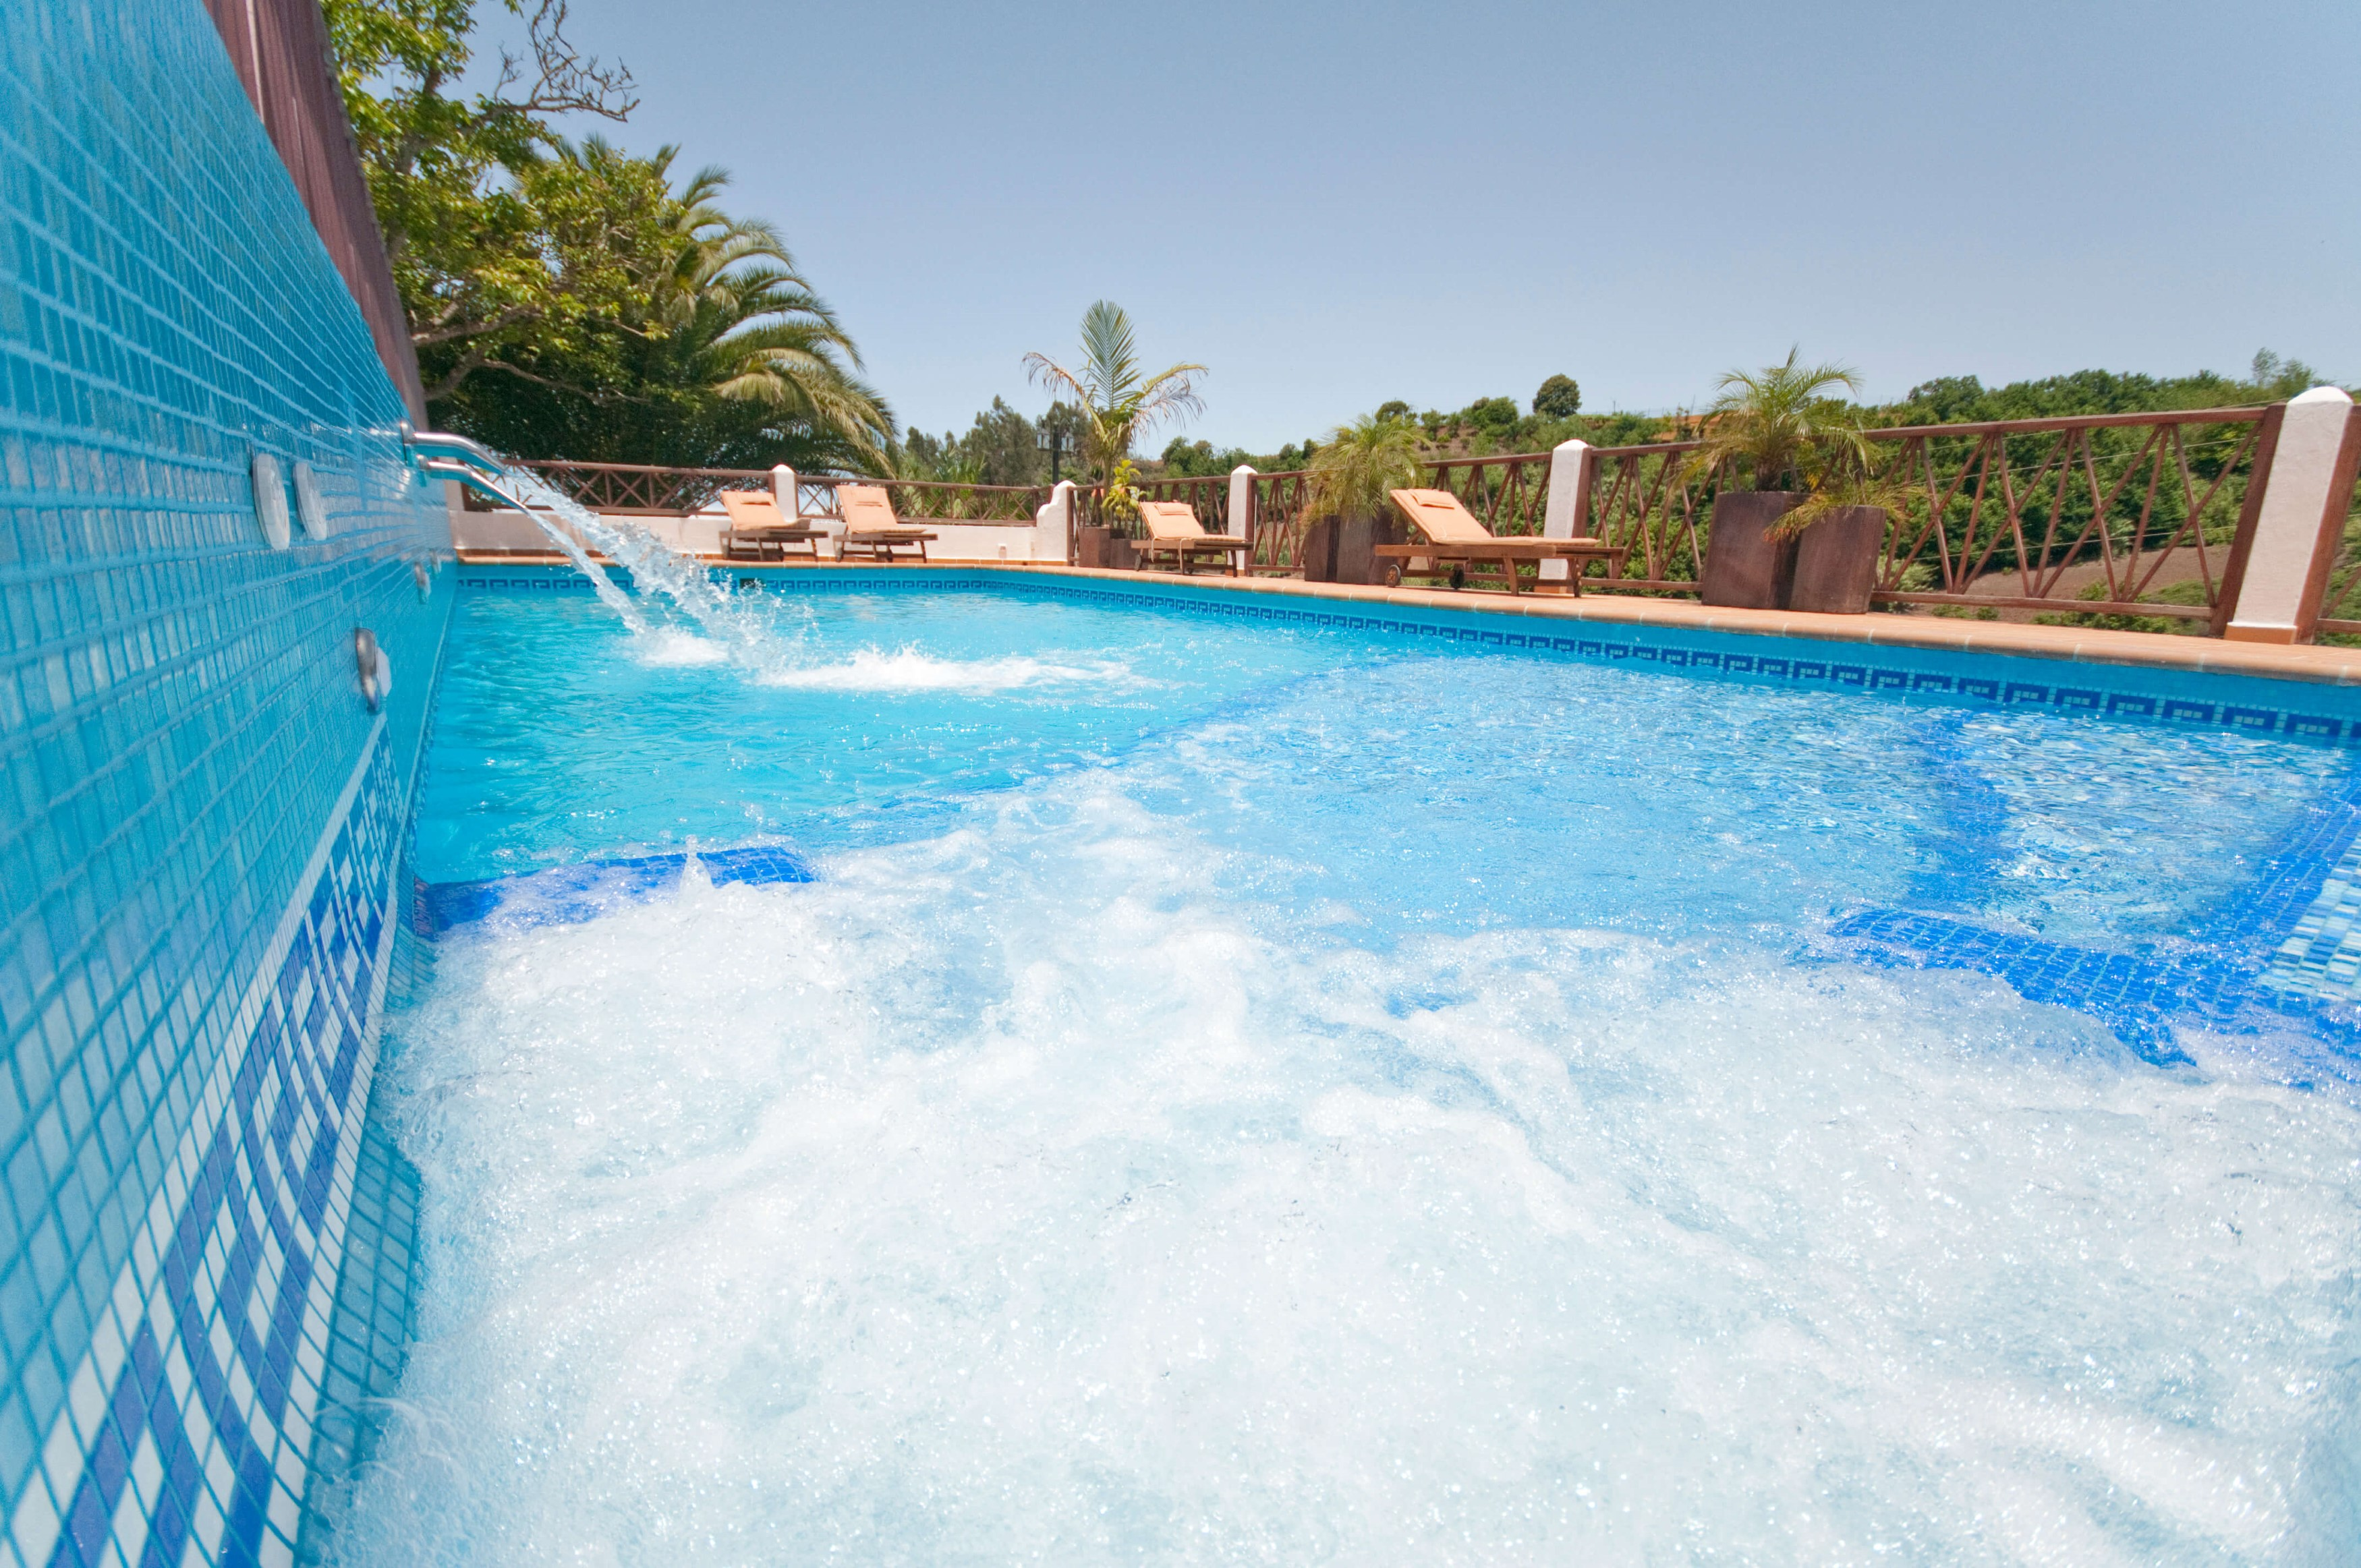 Maison de vacances House - 2 Bedrooms with Pool and WiFi - 106781 (2742990), San Fernando, Grande Canarie, Iles Canaries, Espagne, image 23